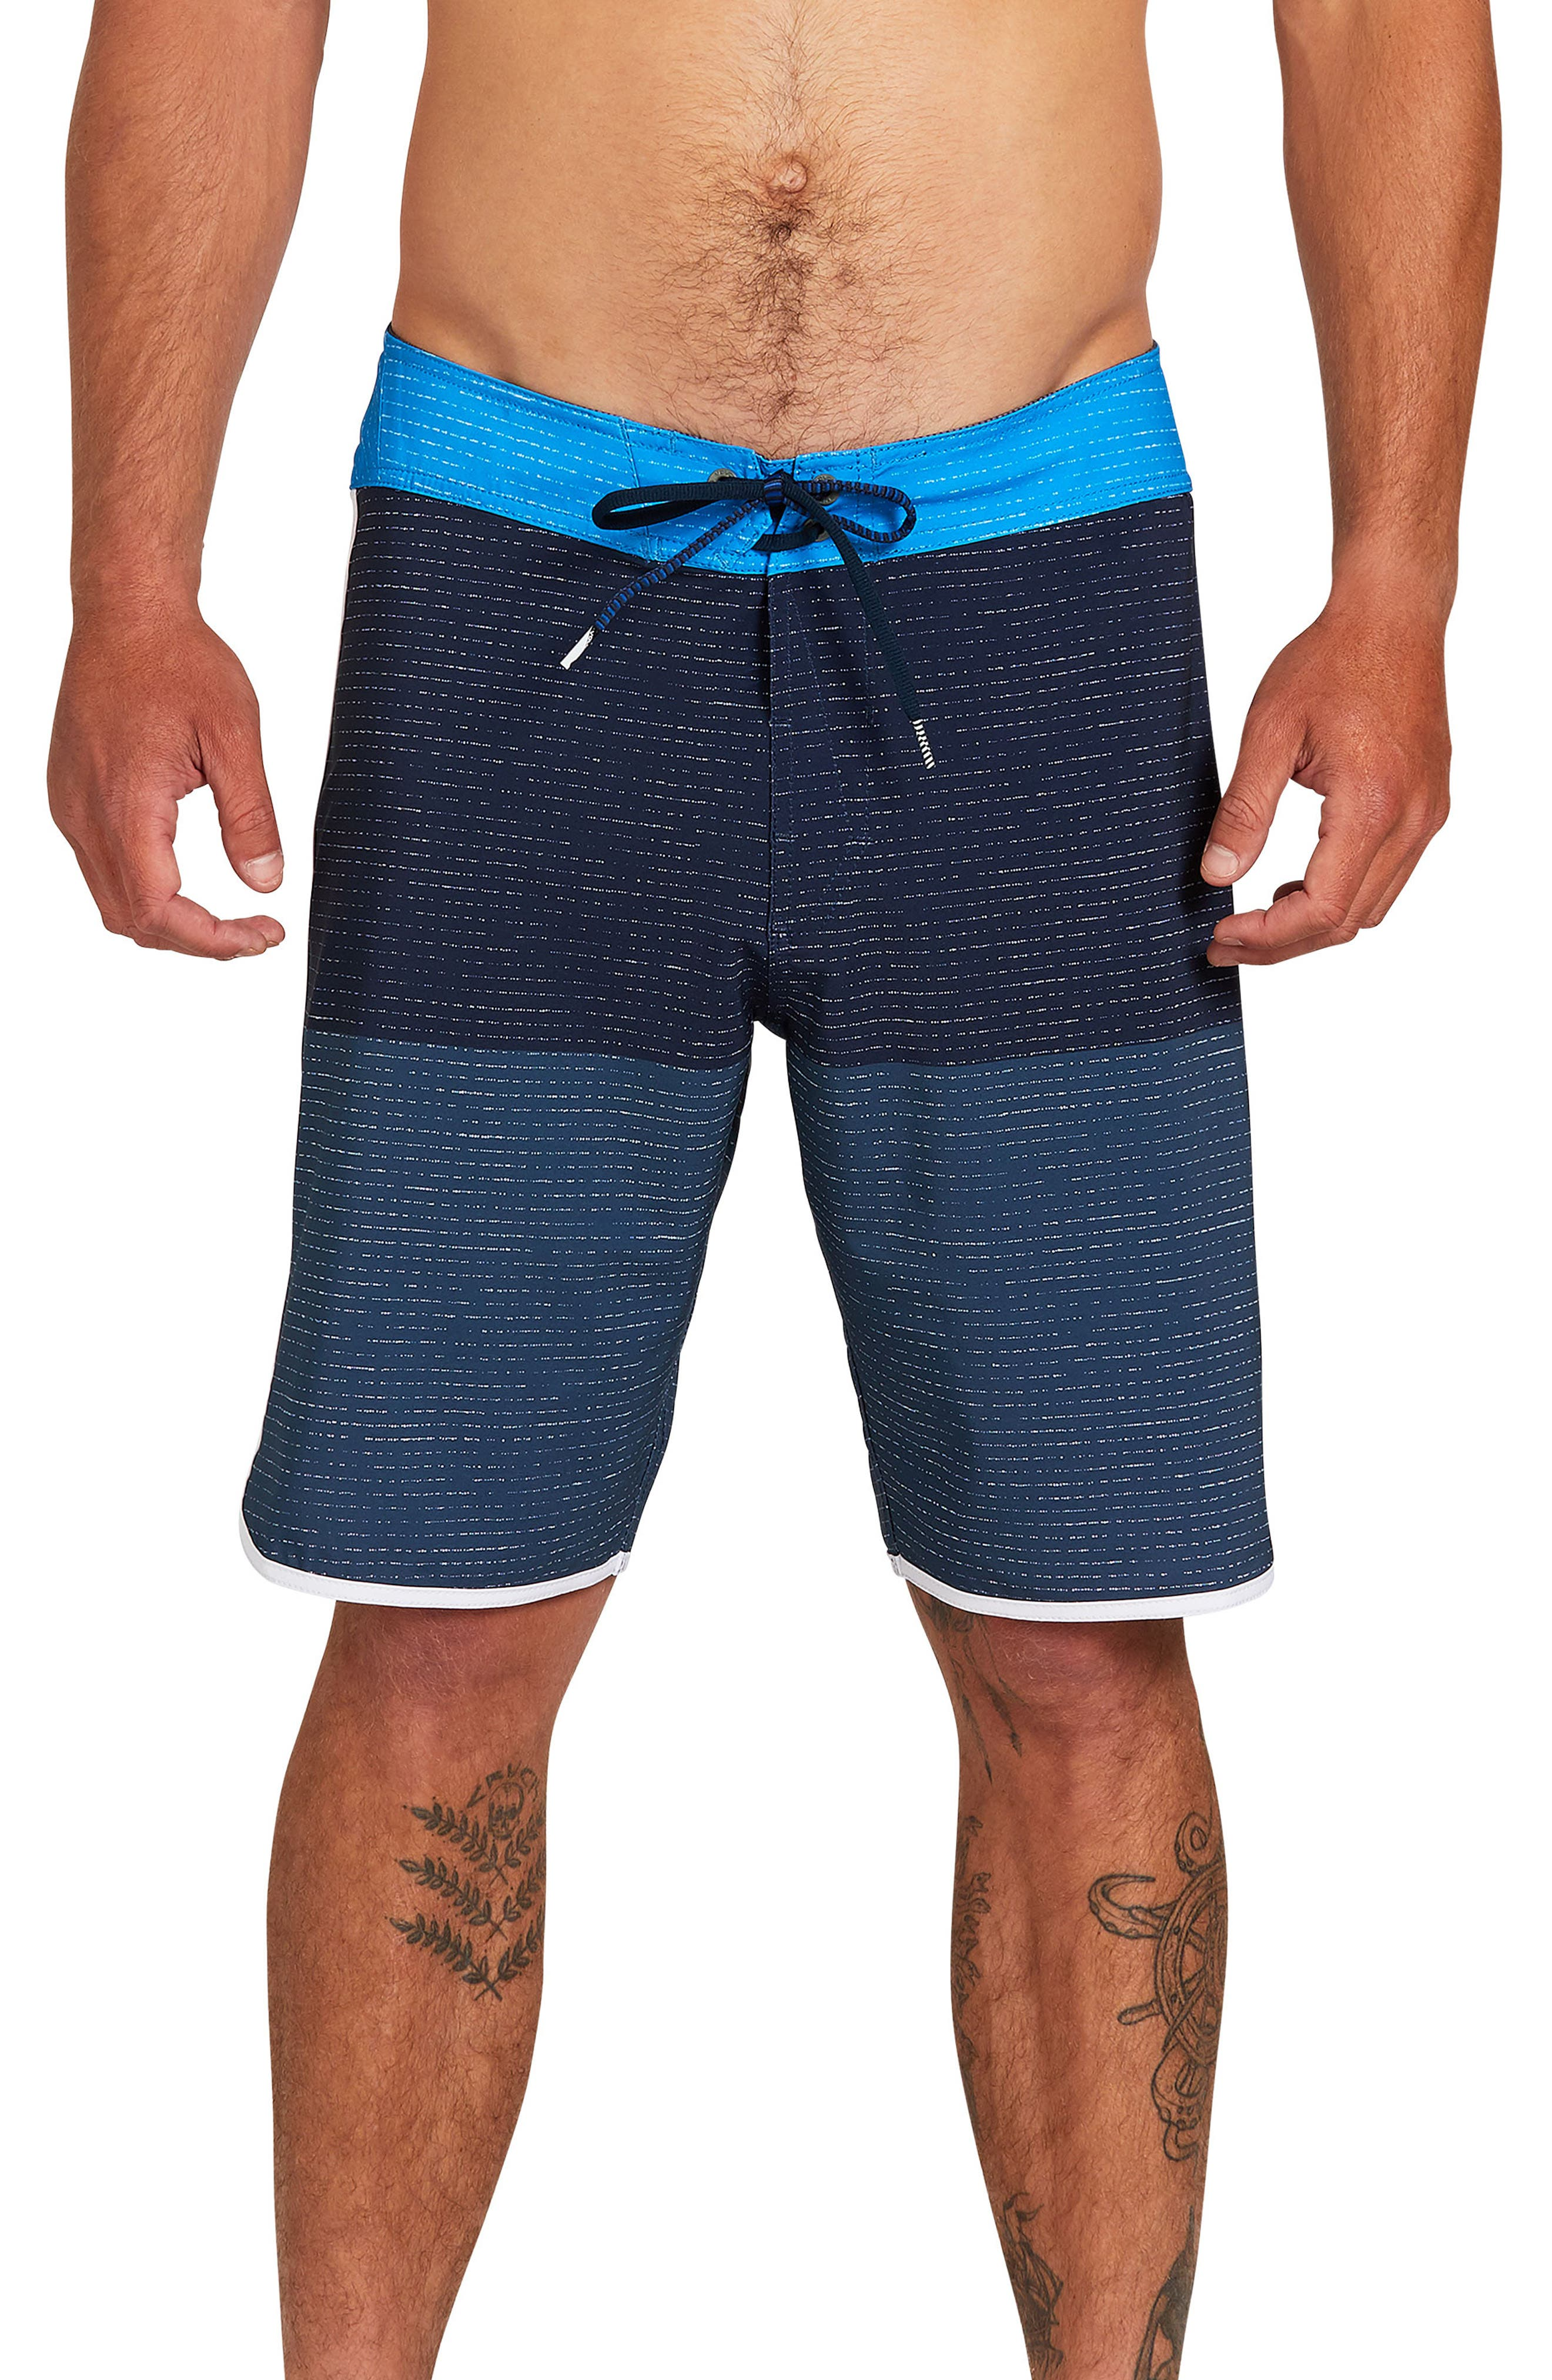 Mens Swim Trunks Quick Dry Summer Holiday Beach Shorts with Mesh Lining Stylish Watercolor Cactus Pink Flowers Beachwear